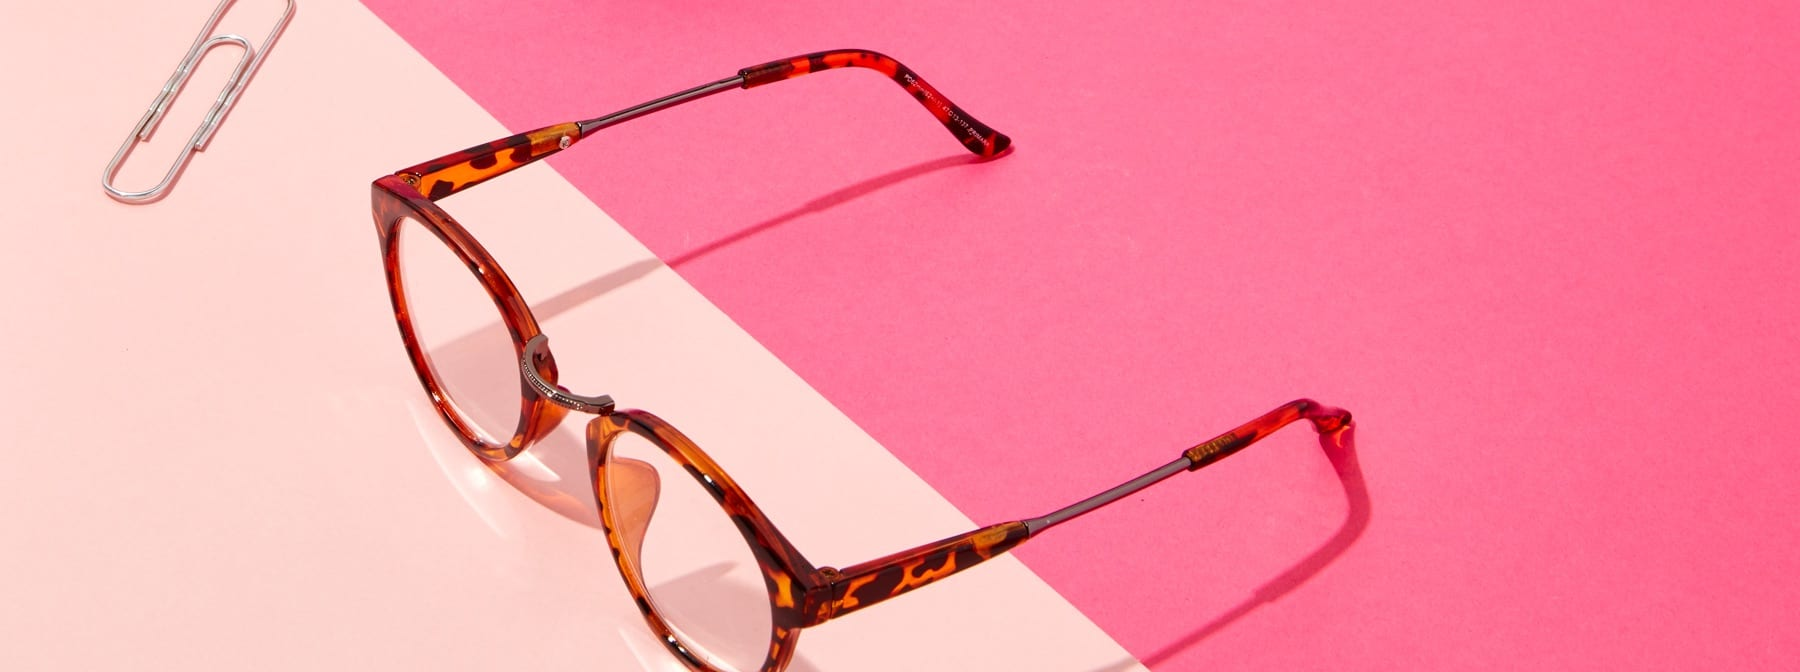 Makeup and Glasses: Tips on How the Two Can Coexist